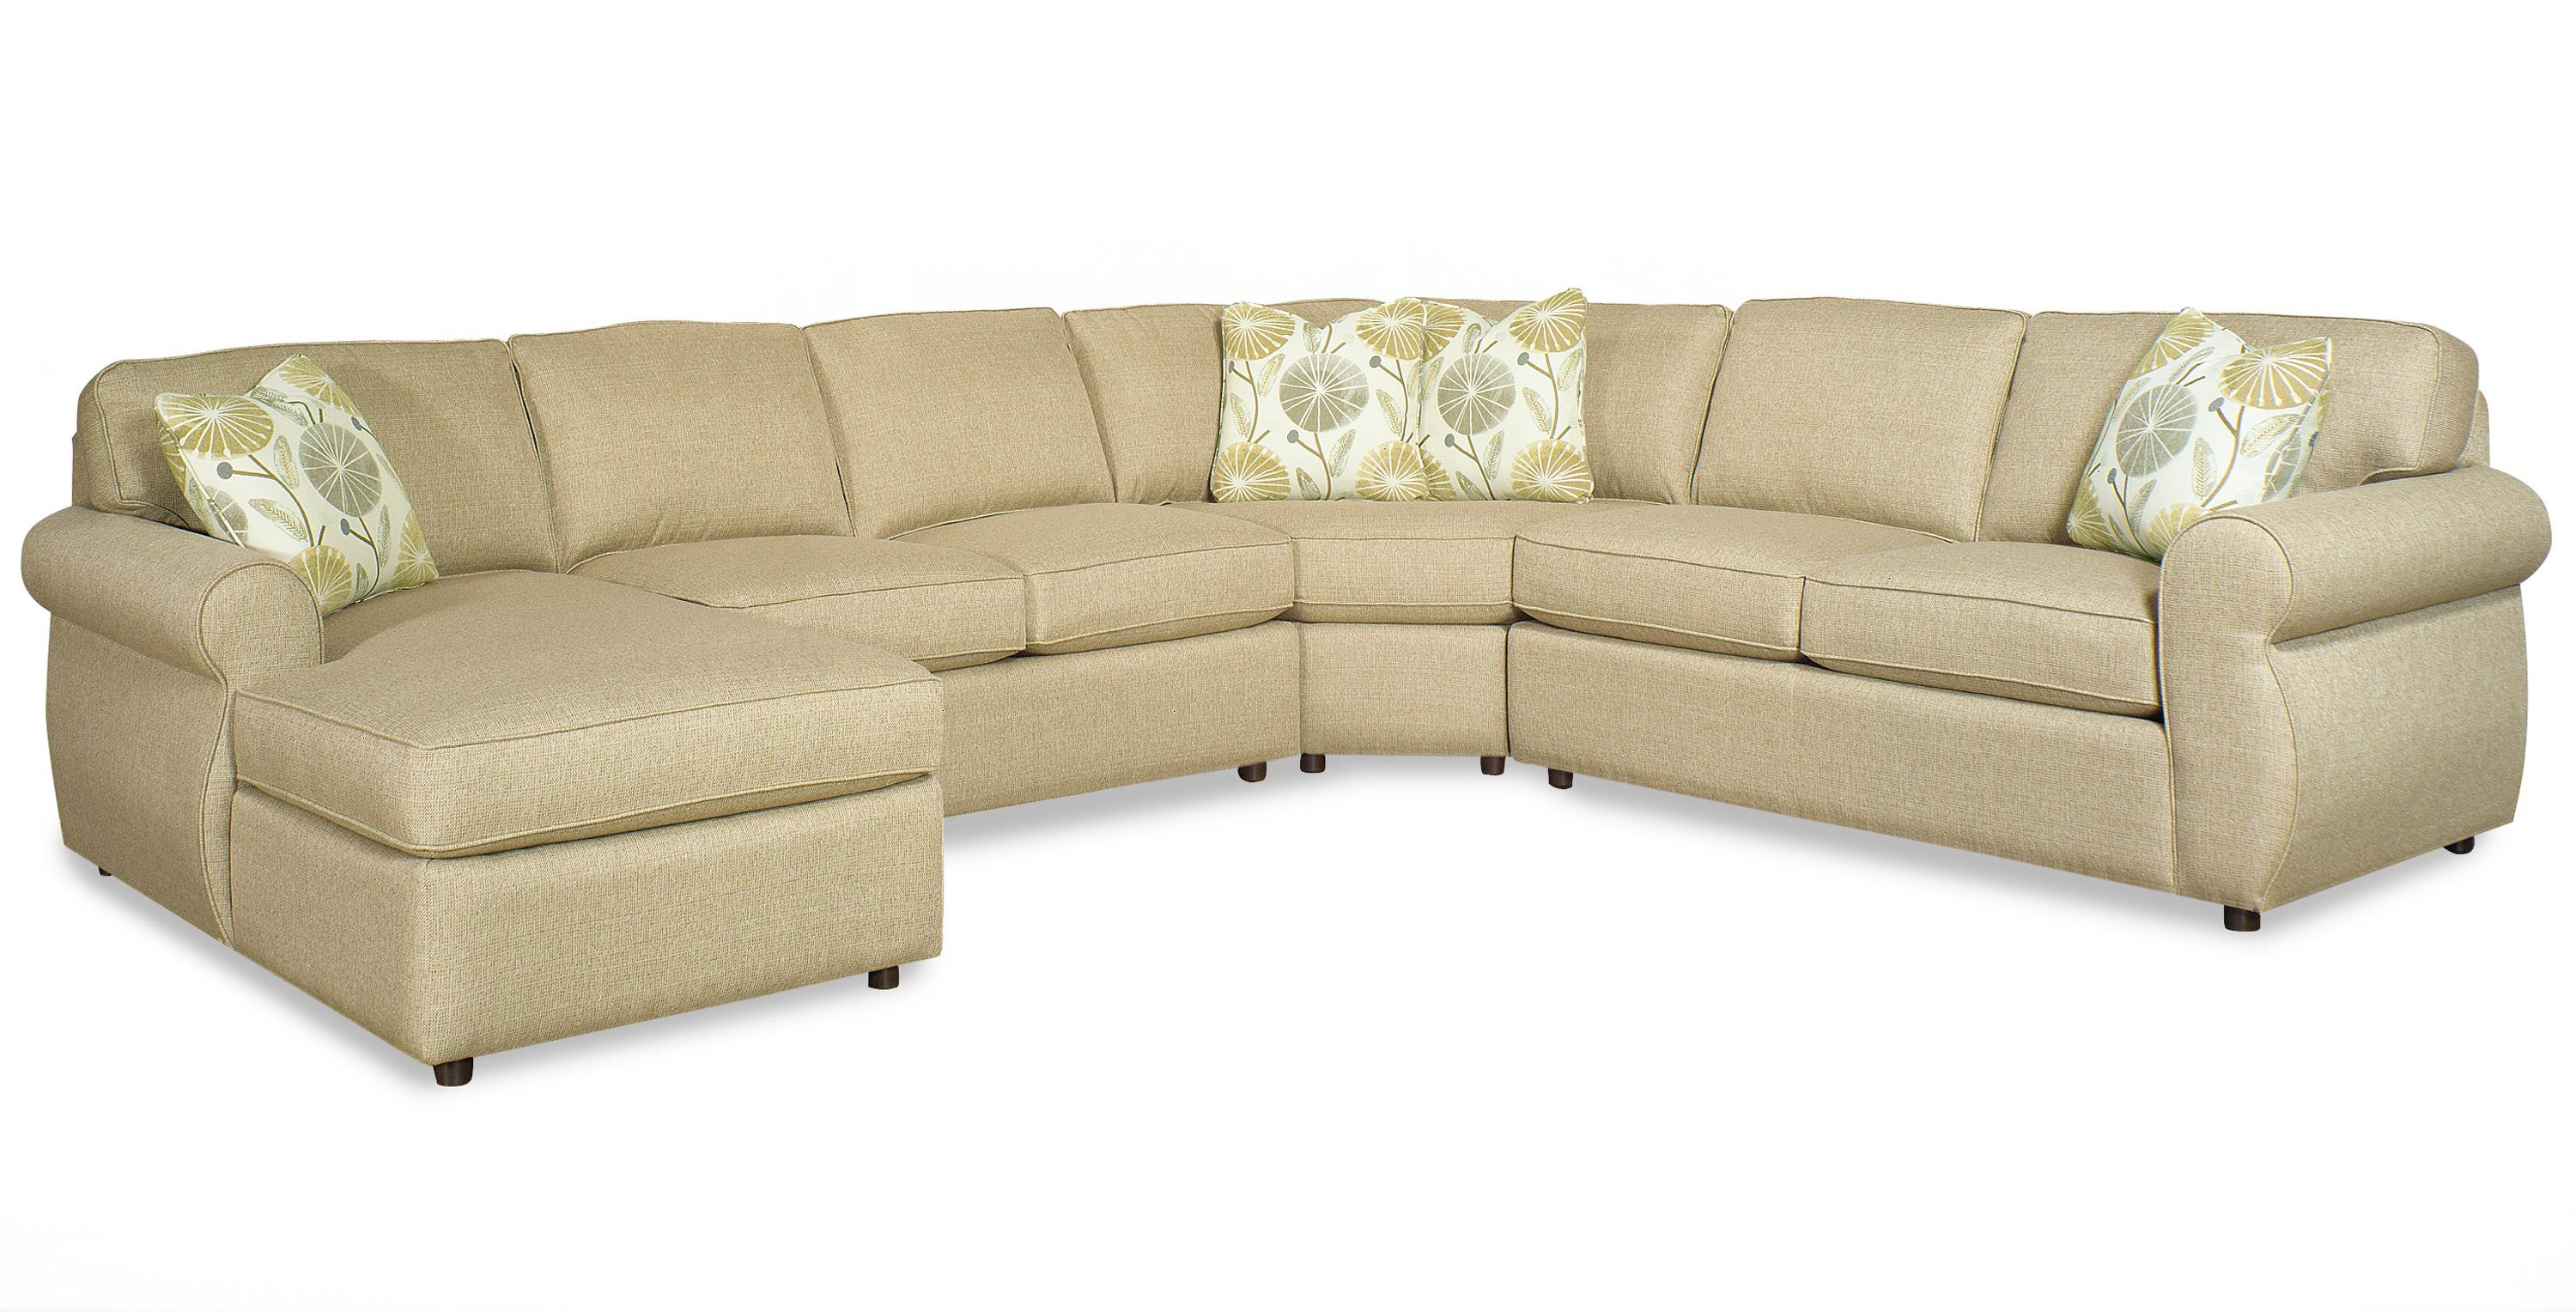 Craftmaster Transitional Four Piece Sectional Sofa with